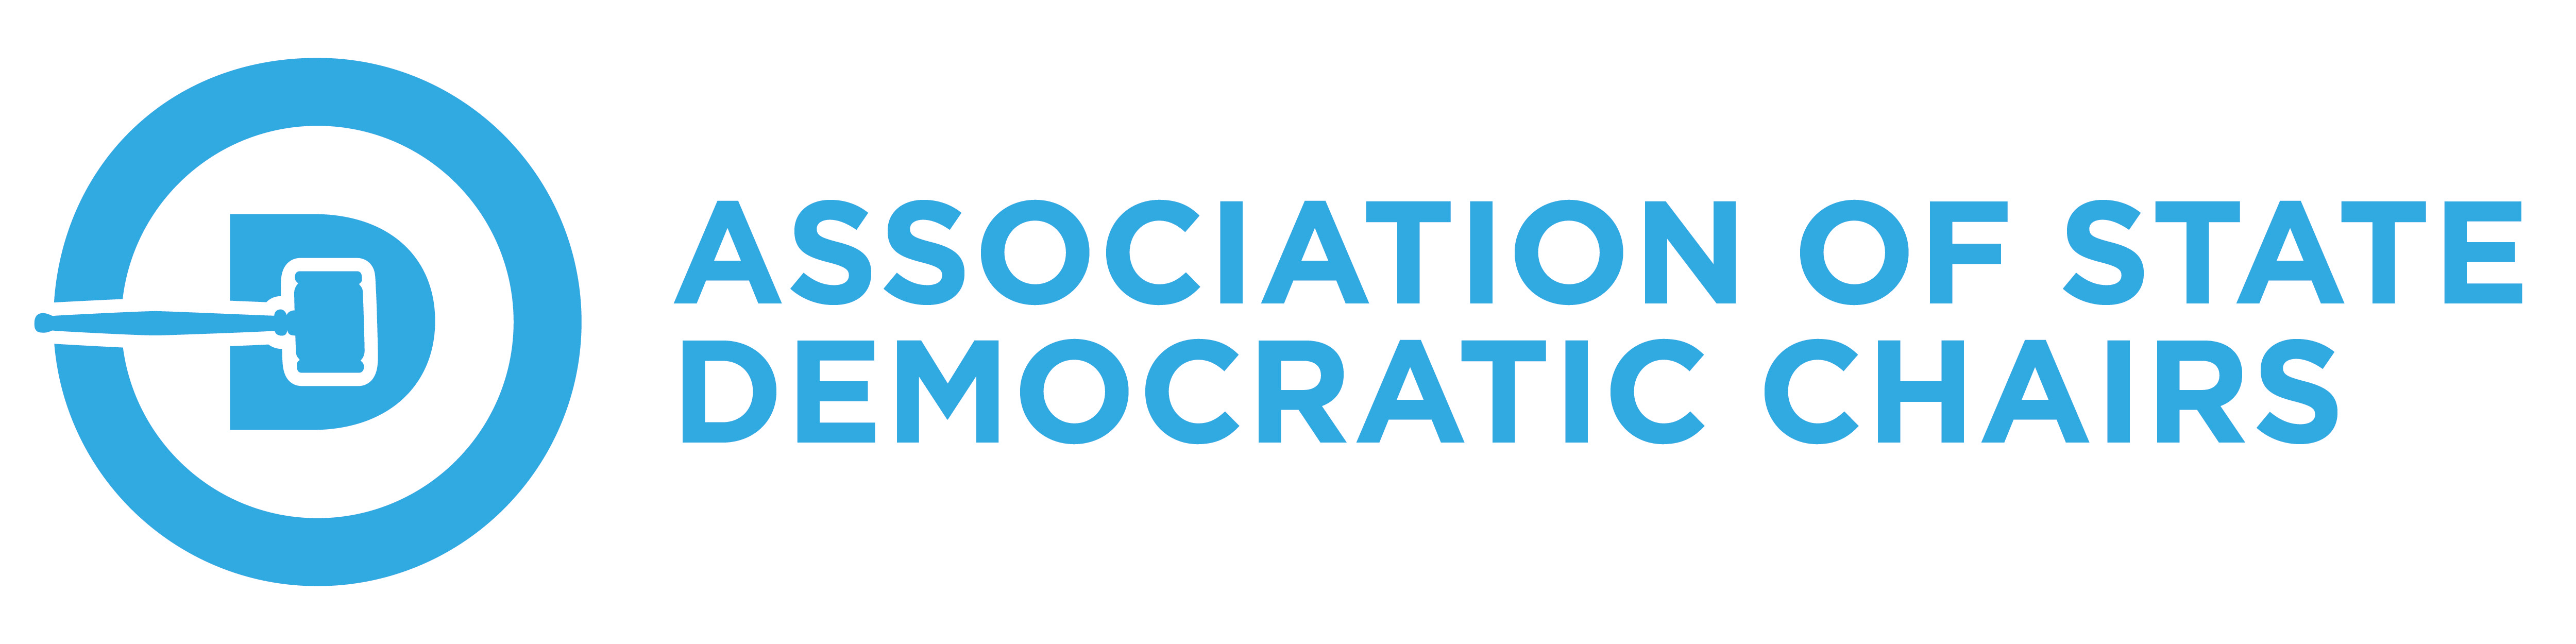 Association of State Democratic Chairs